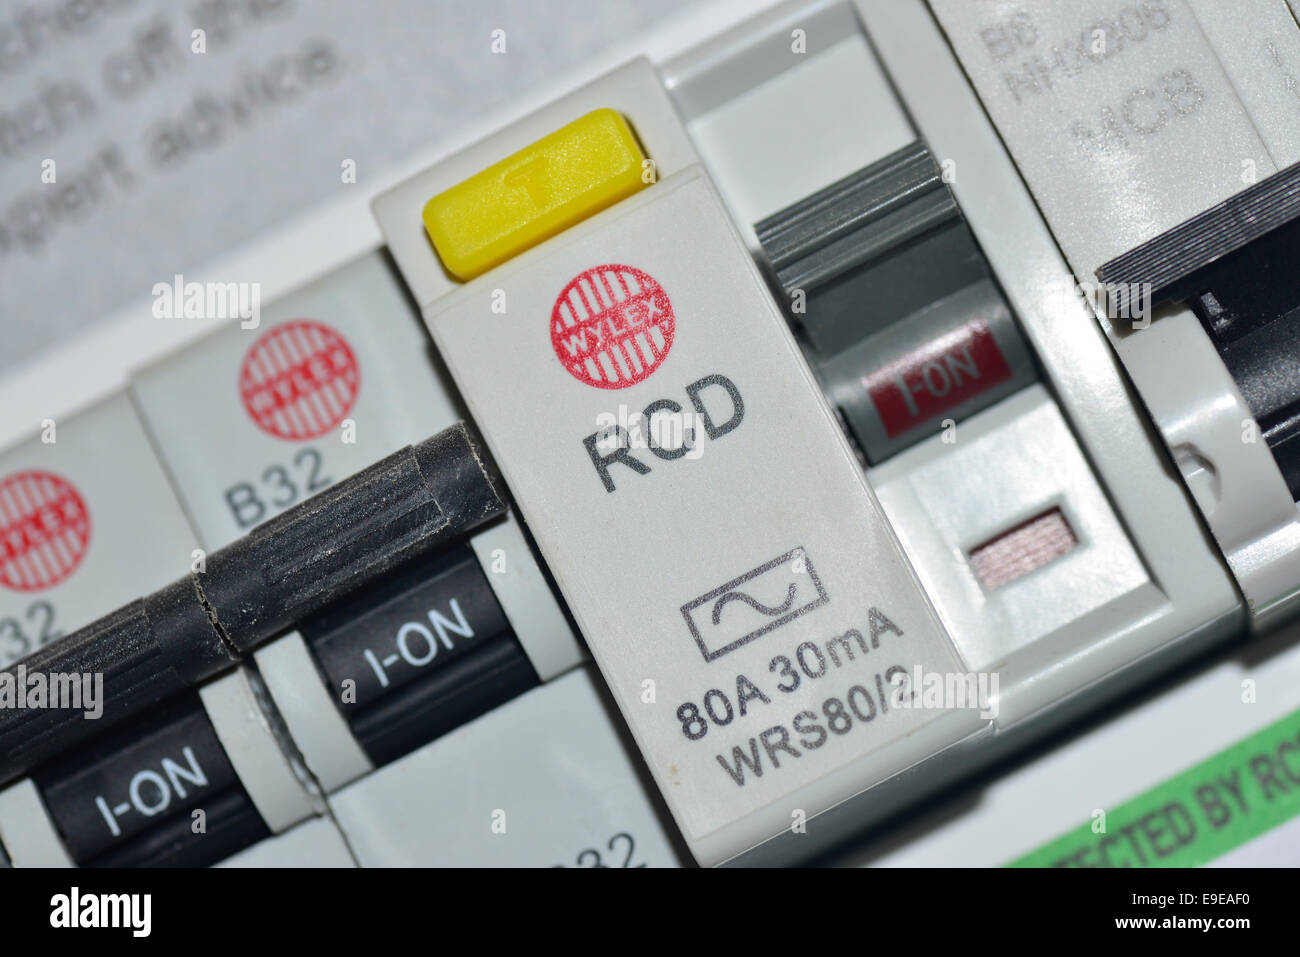 Fuse Box Circuit Breaker Stock Photos Main Switches In A Fusebox Image